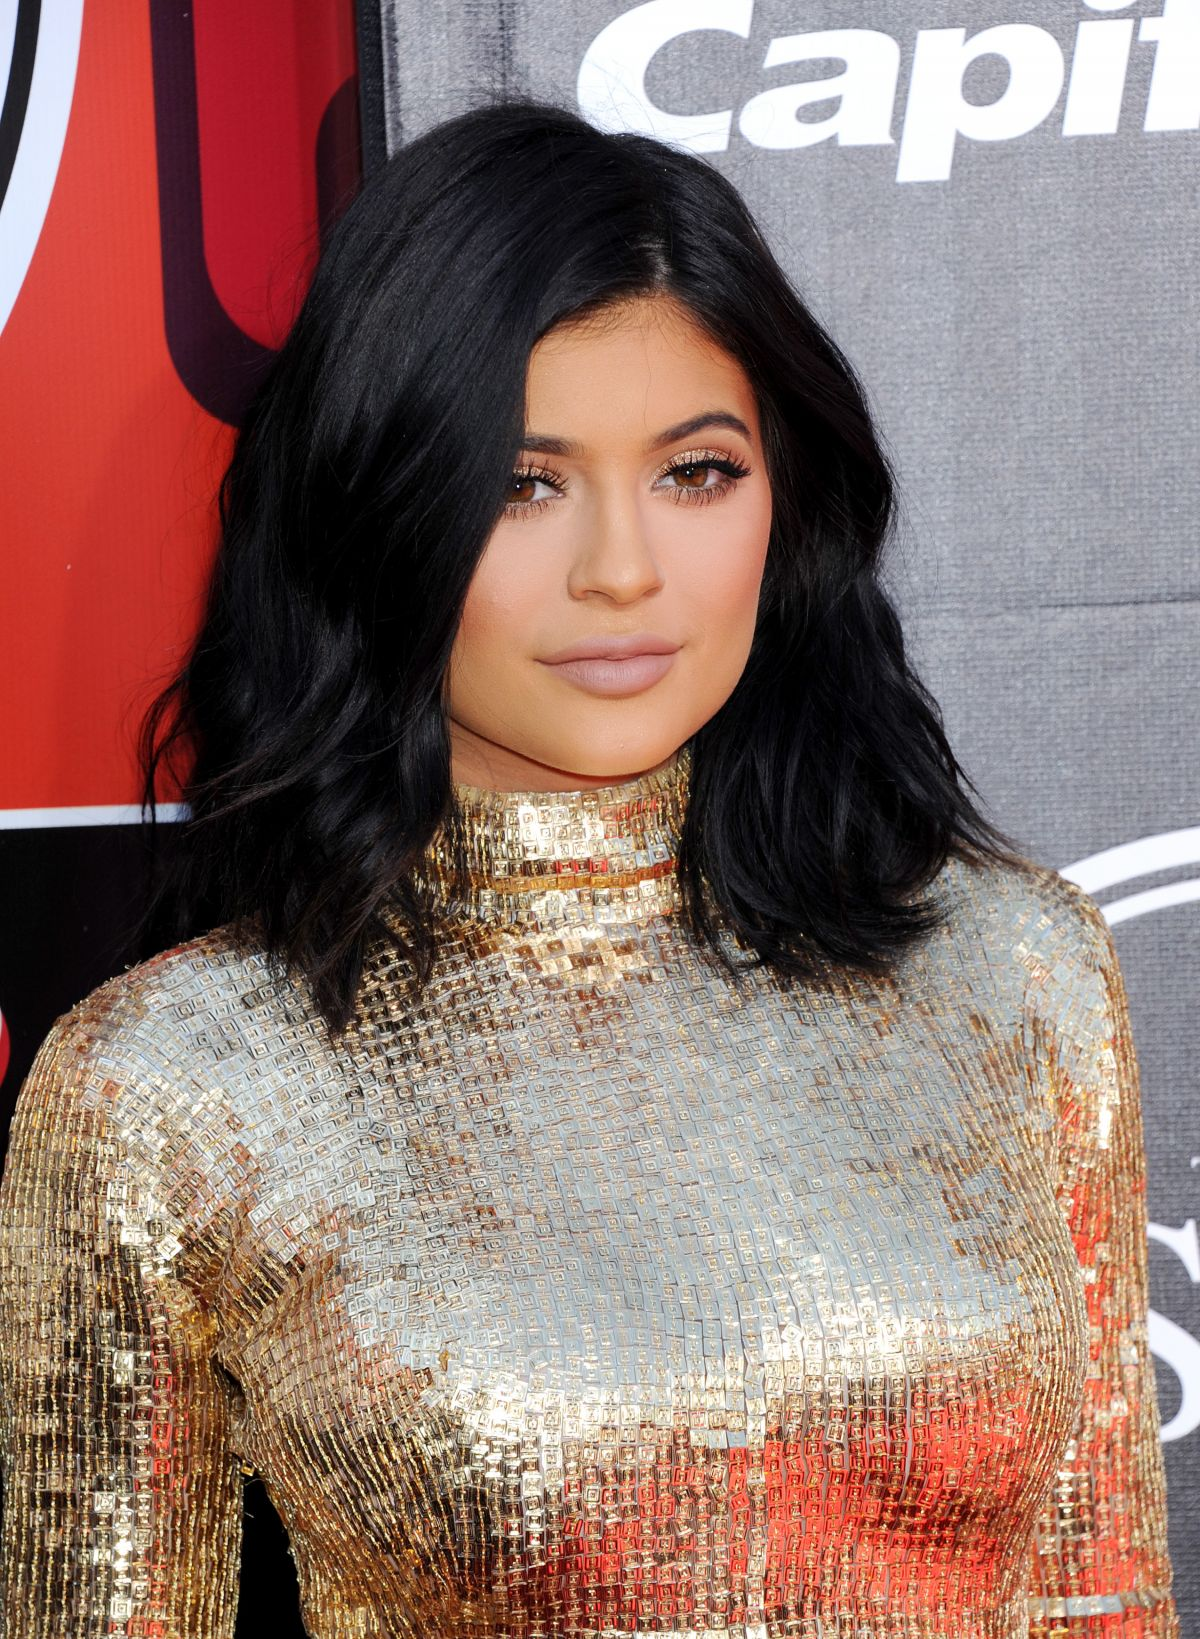 Kylie Jenner Depressed: KYLIE JENNER At 2015 Espys Awards In Los Angeles